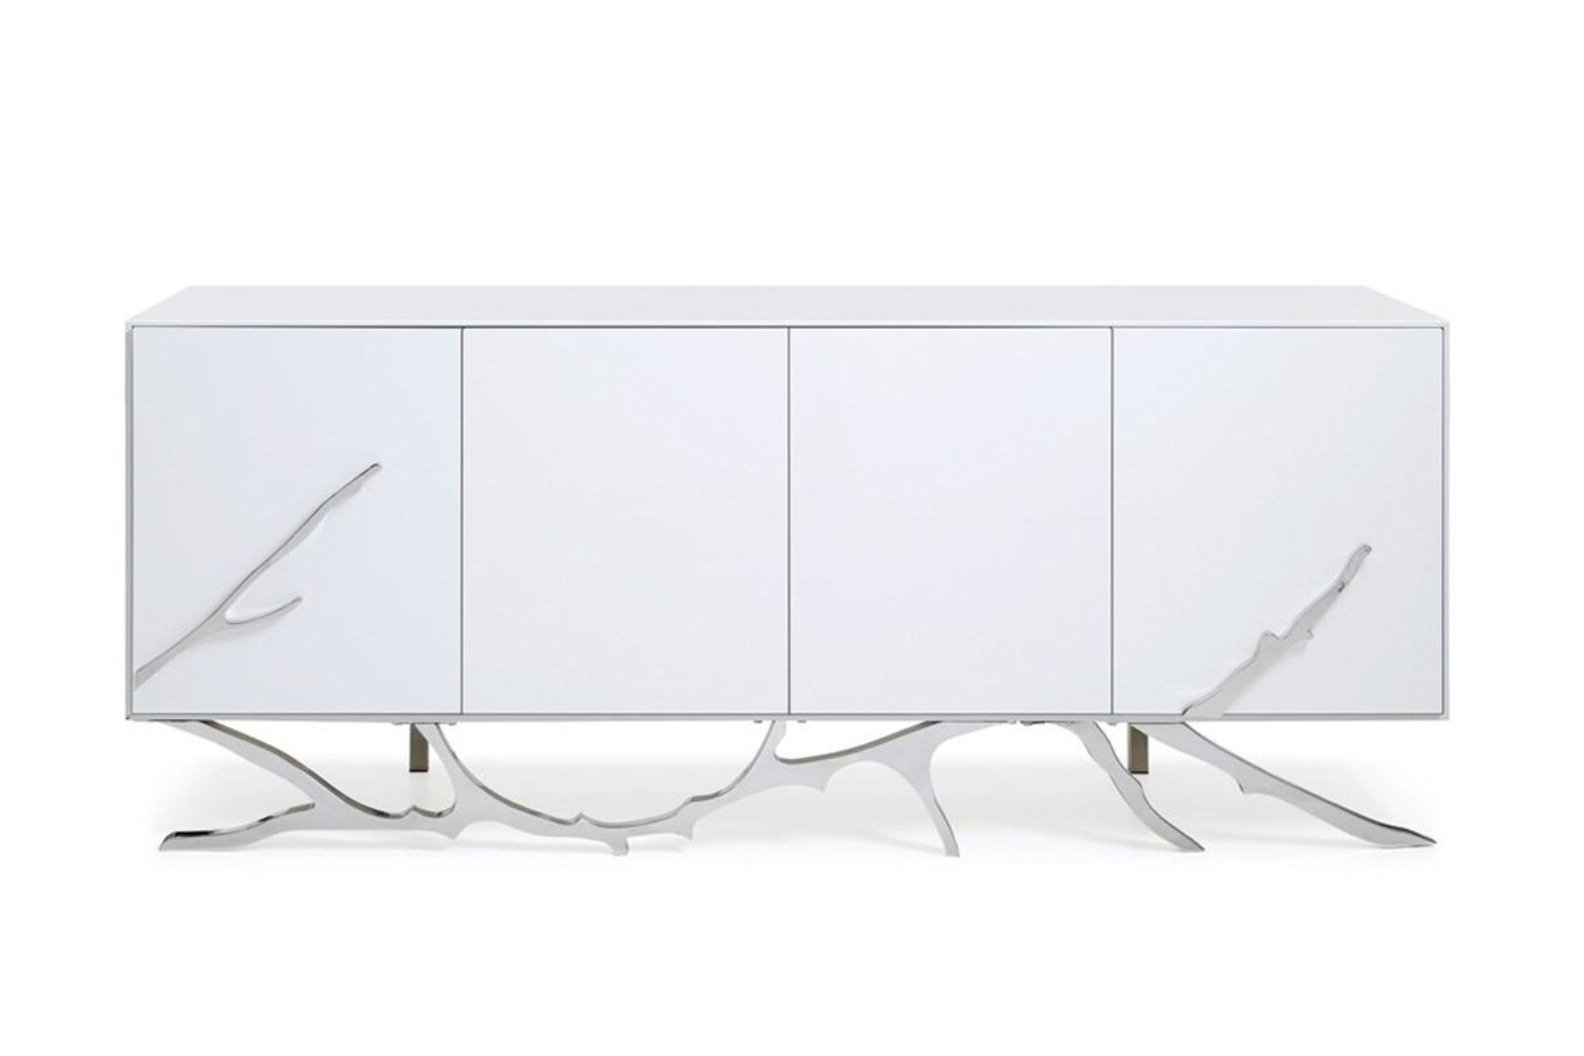 Dalessio Buffet Intended For White Wood And Chrome Metal High Gloss Buffets (View 19 of 20)